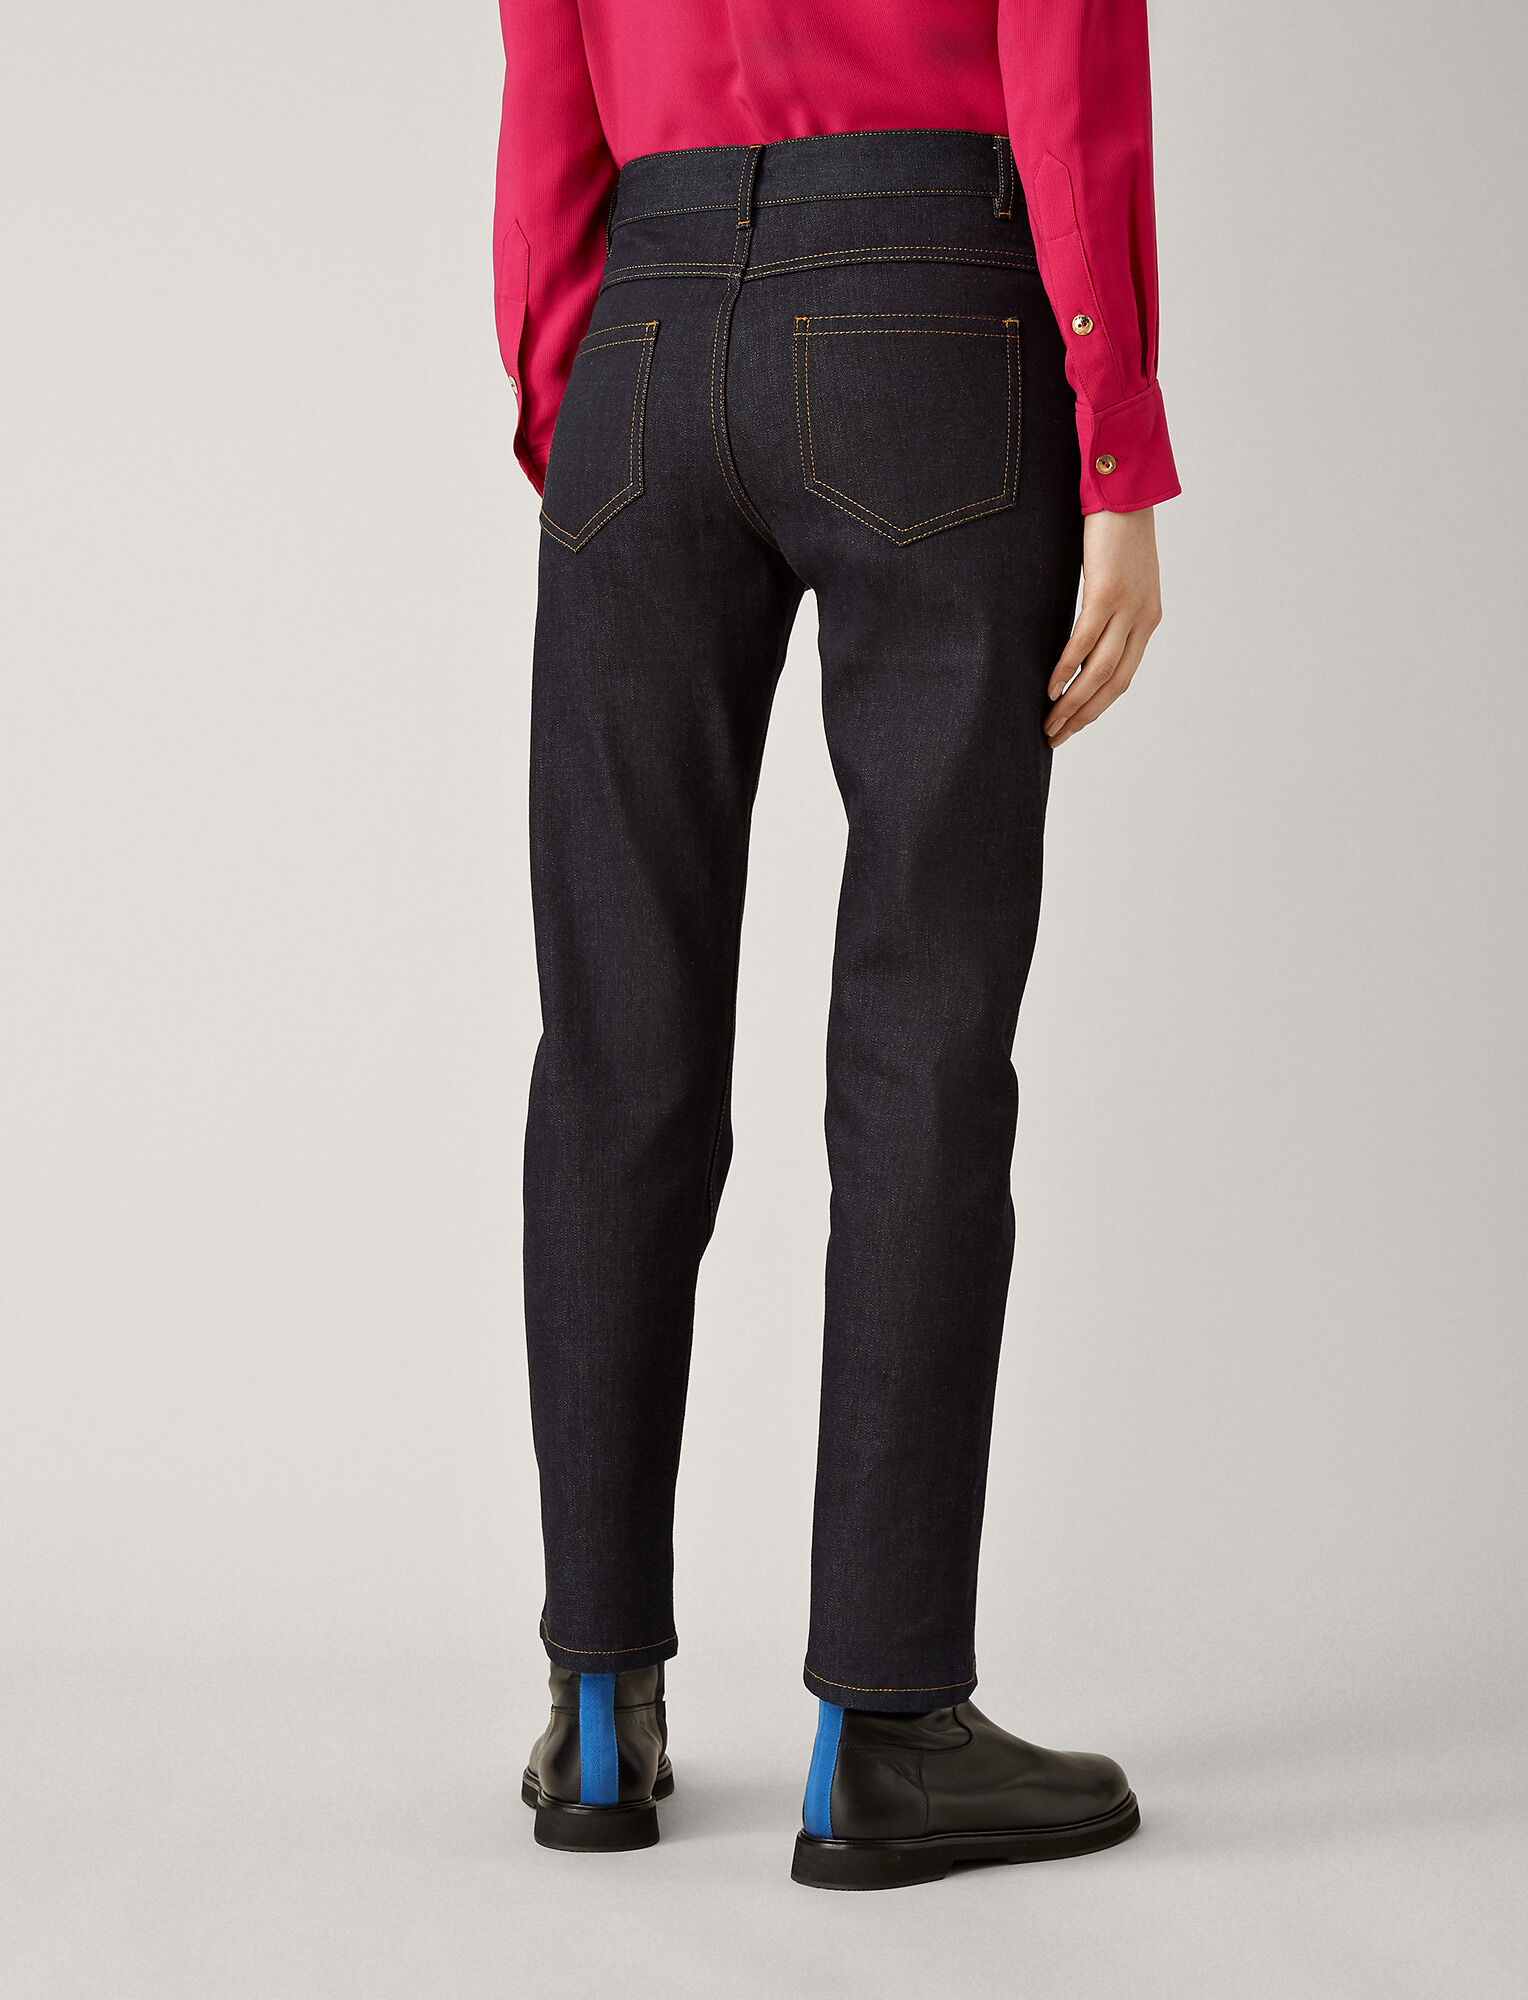 Joseph, Den Denim Stretch Trousers, in PURE INDIGO